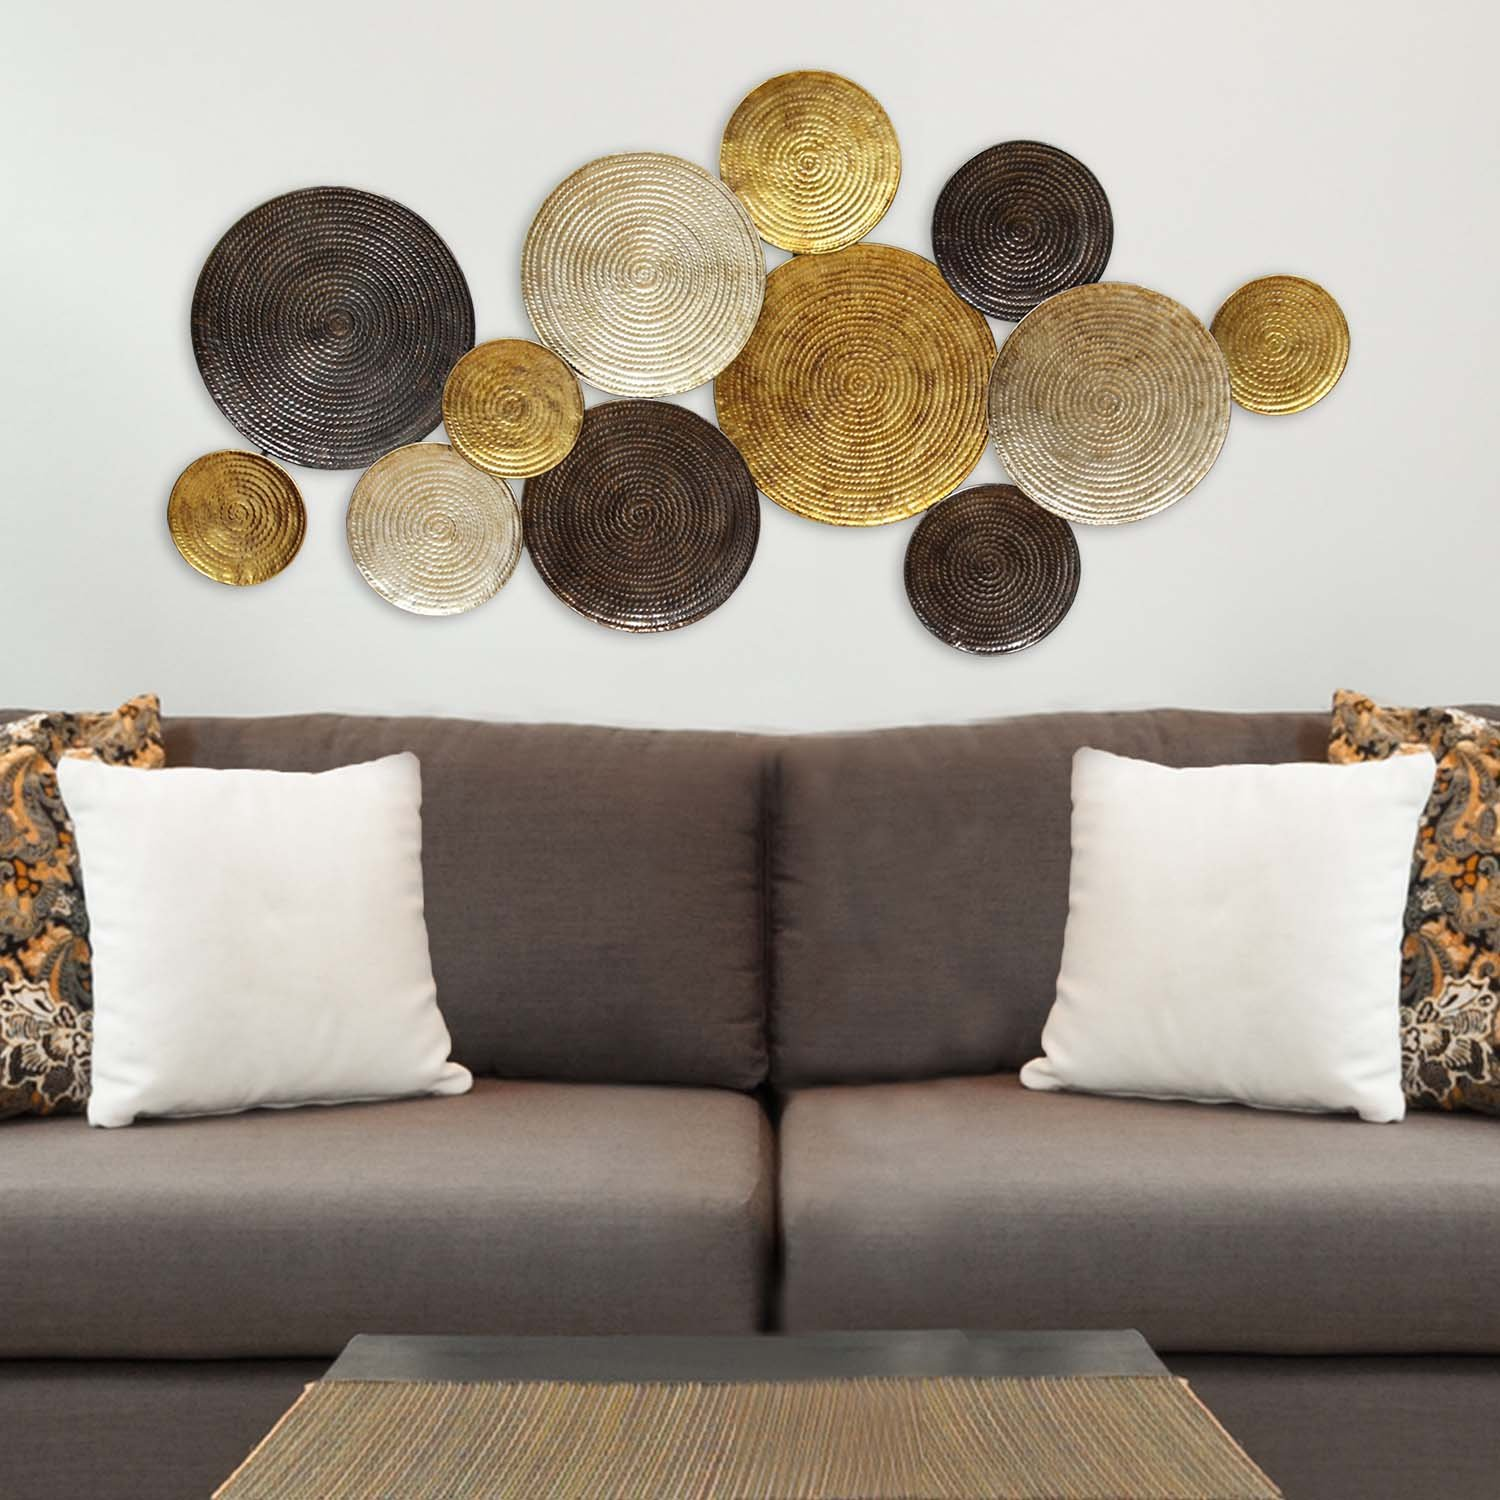 Amazon.com: Stratton Home Decor SHD0067 Multi Circles Wall Decor: Home U0026  Kitchen